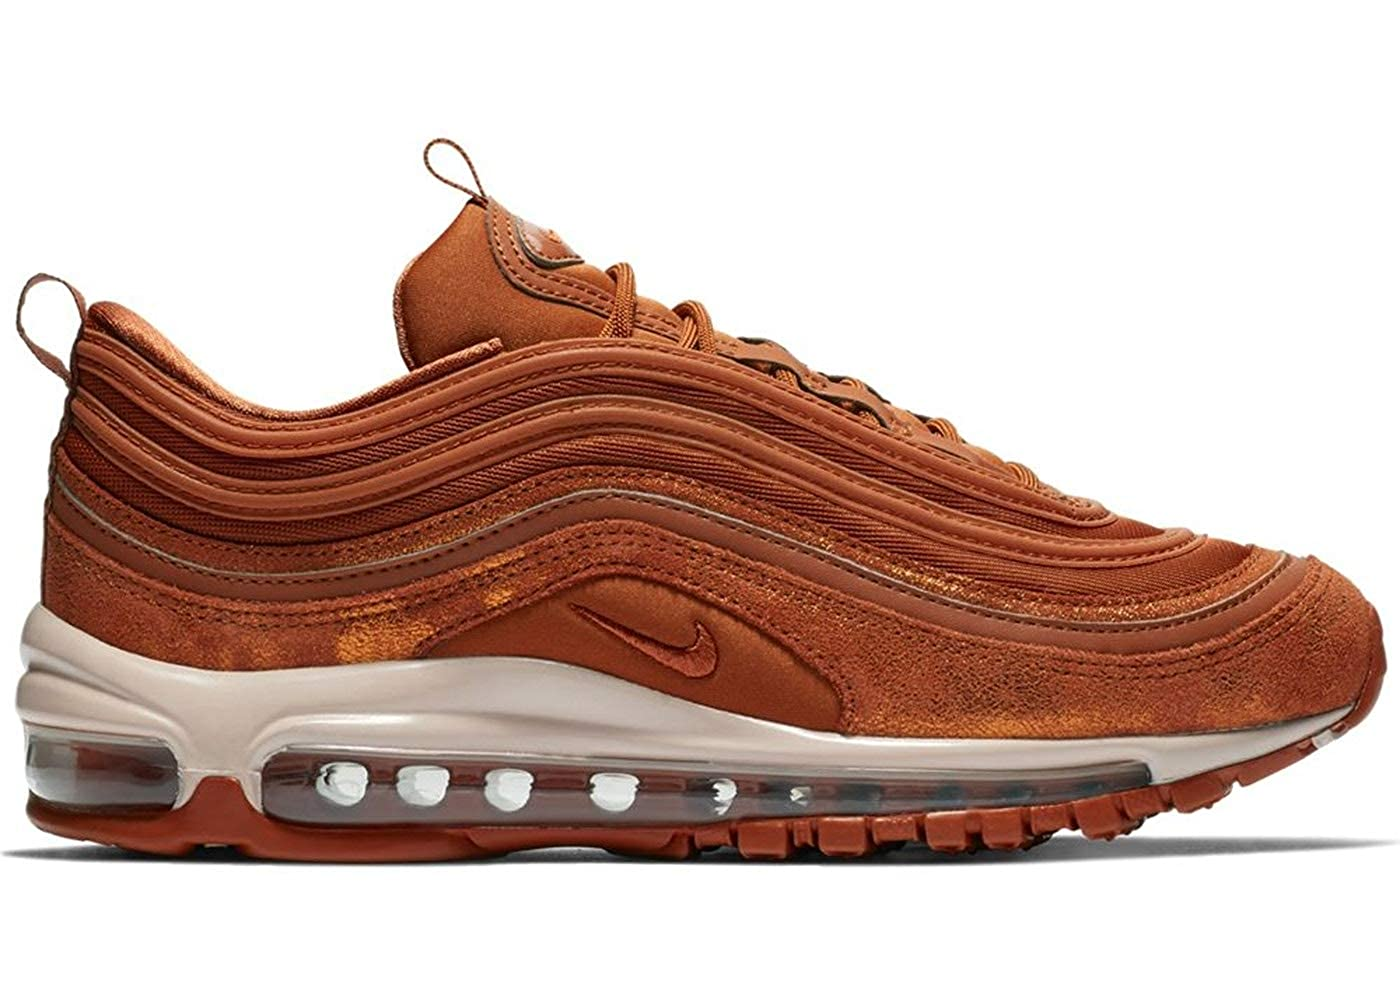 reputable site 36c15 bc651 Amazon.com | Nike Air Max 97 SE Dark Russet/Metallic Tawny ...